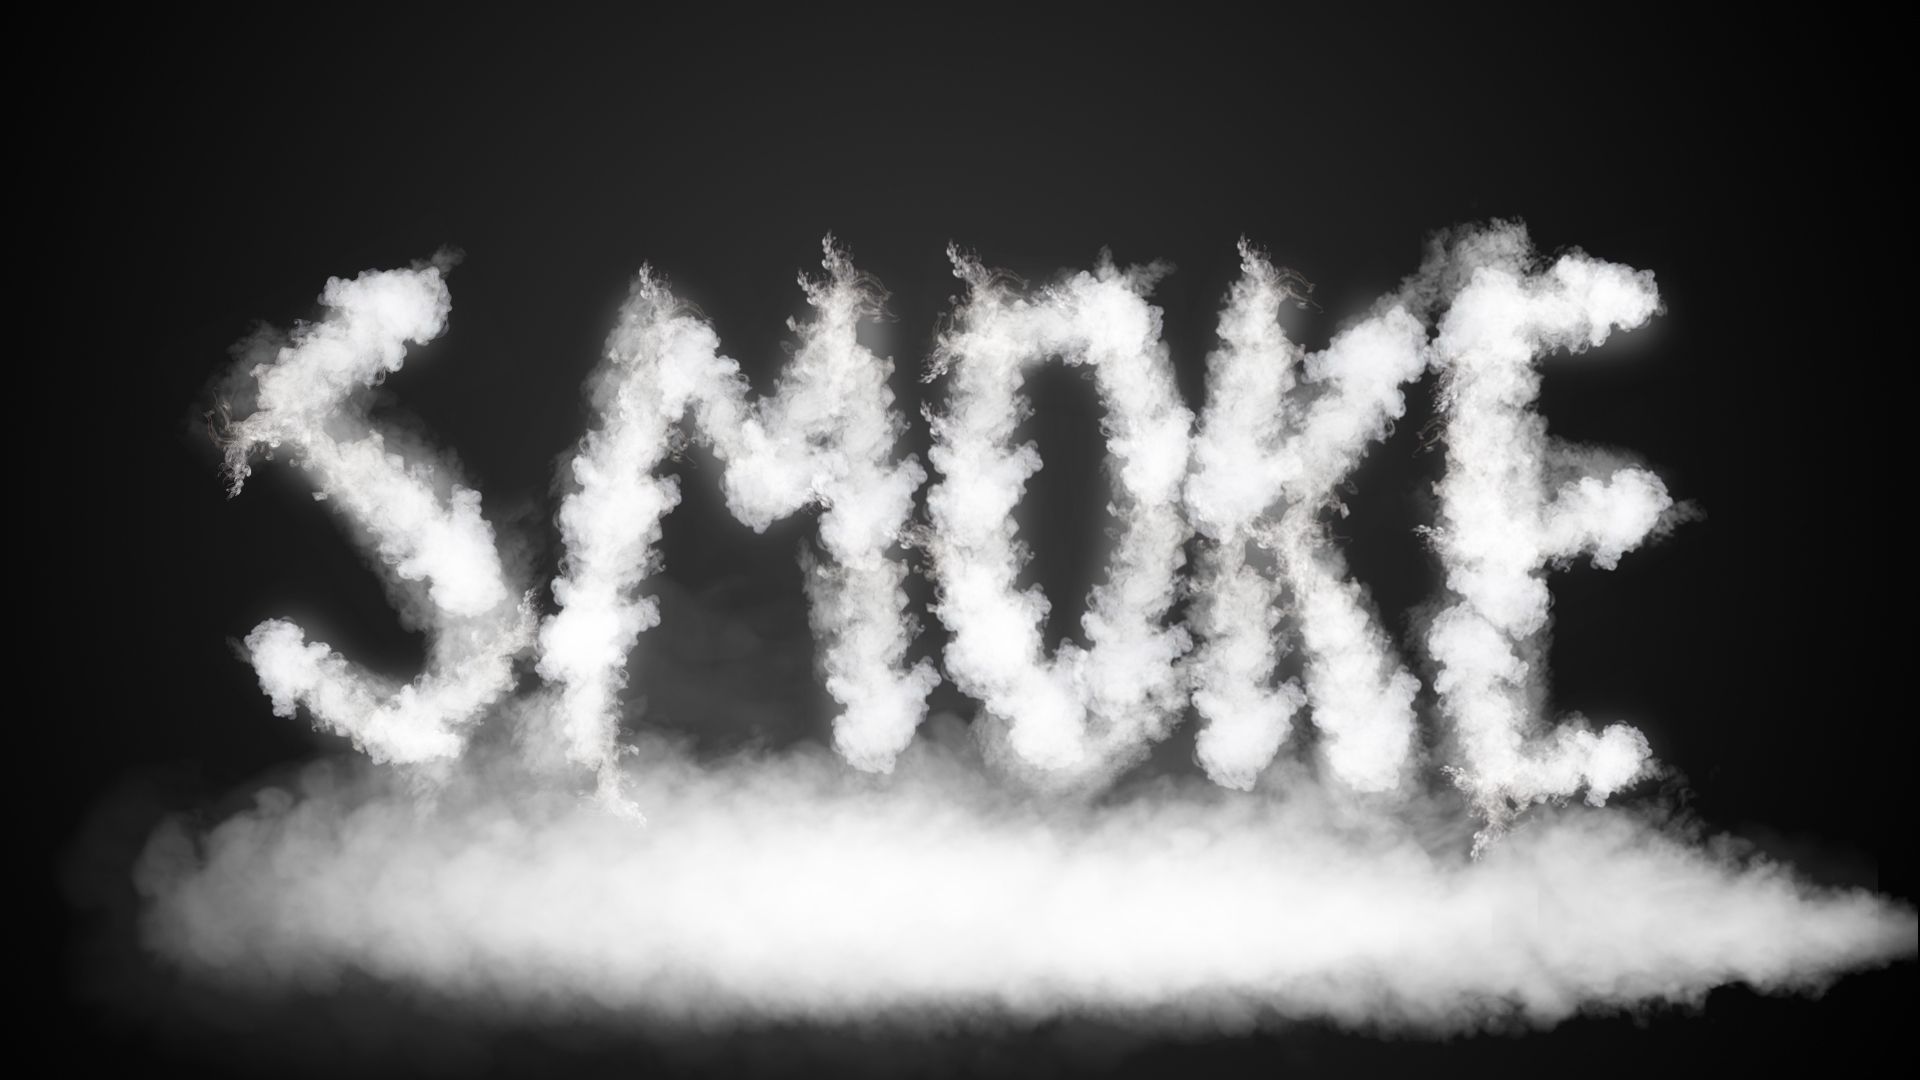 How to create smoke text effect in photoshop photoshop tutorials how to create smoke text effect in photoshop creating baditri Gallery